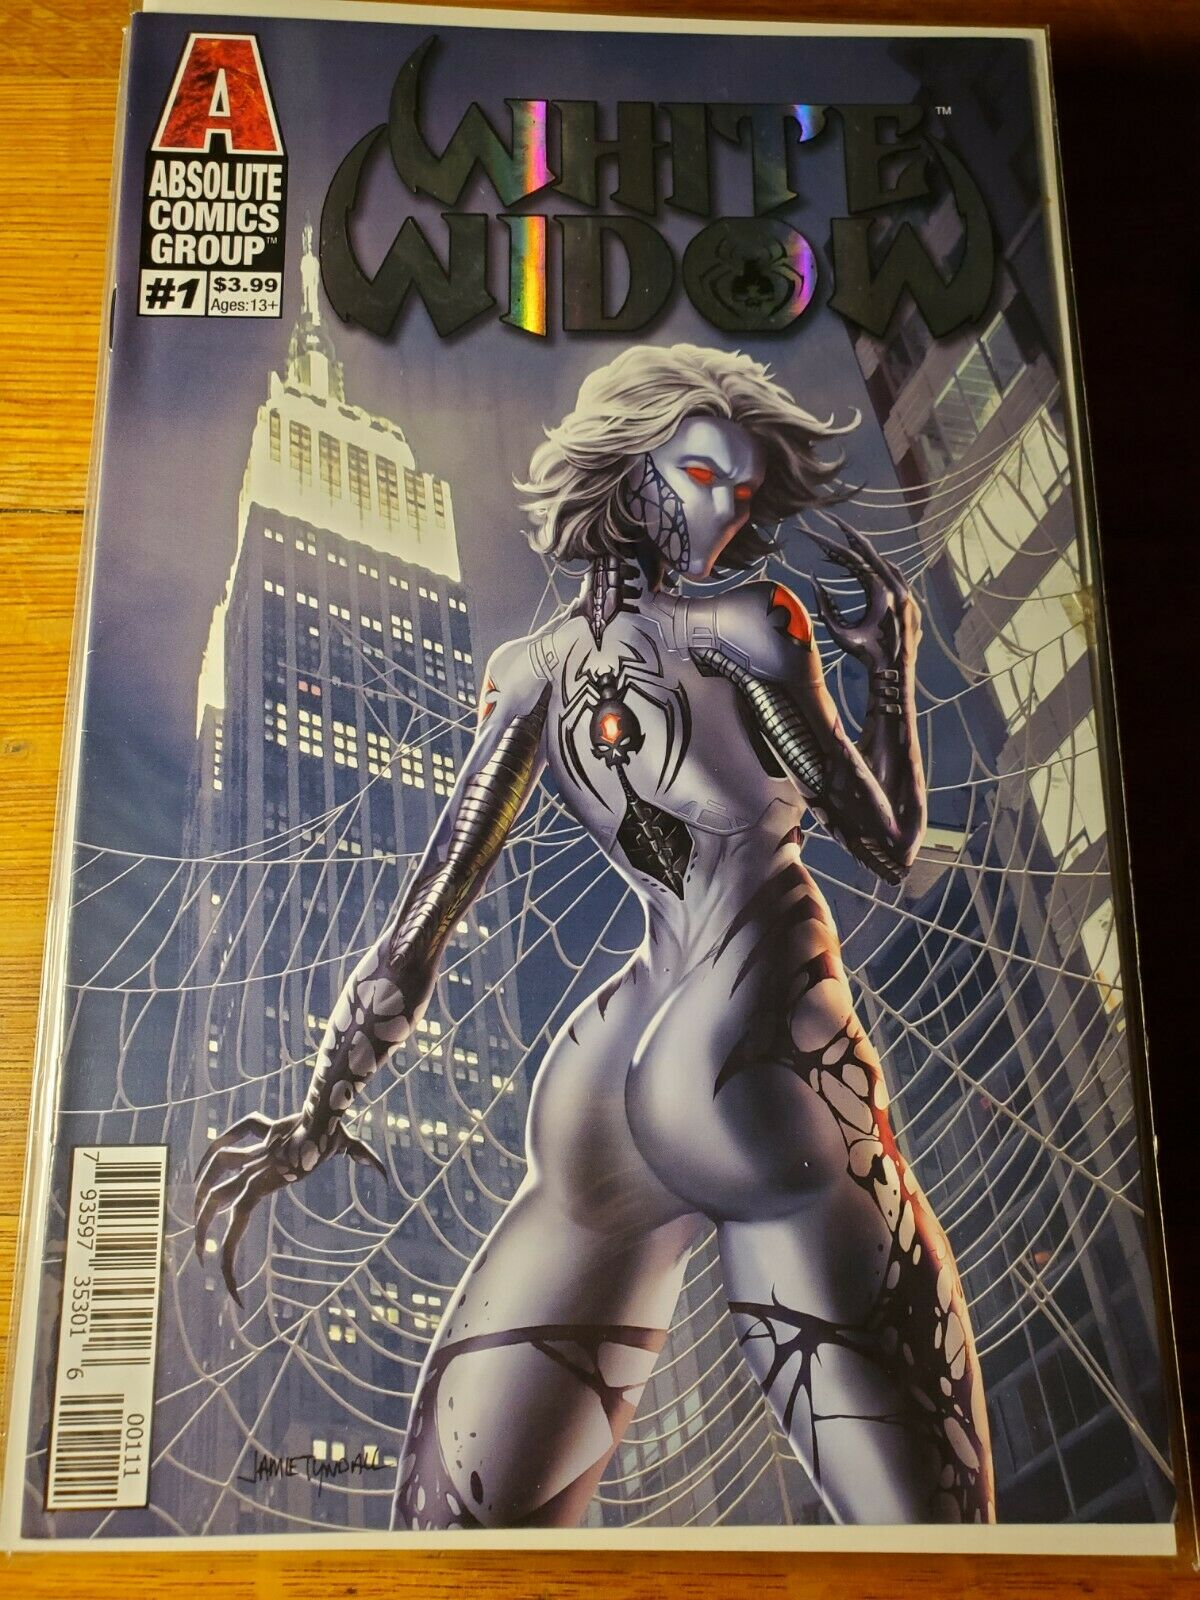 NM WHITE WIDOW 4 BLOODLINES FOIL VARIANT RANDY GREEN COVER EDITION !!